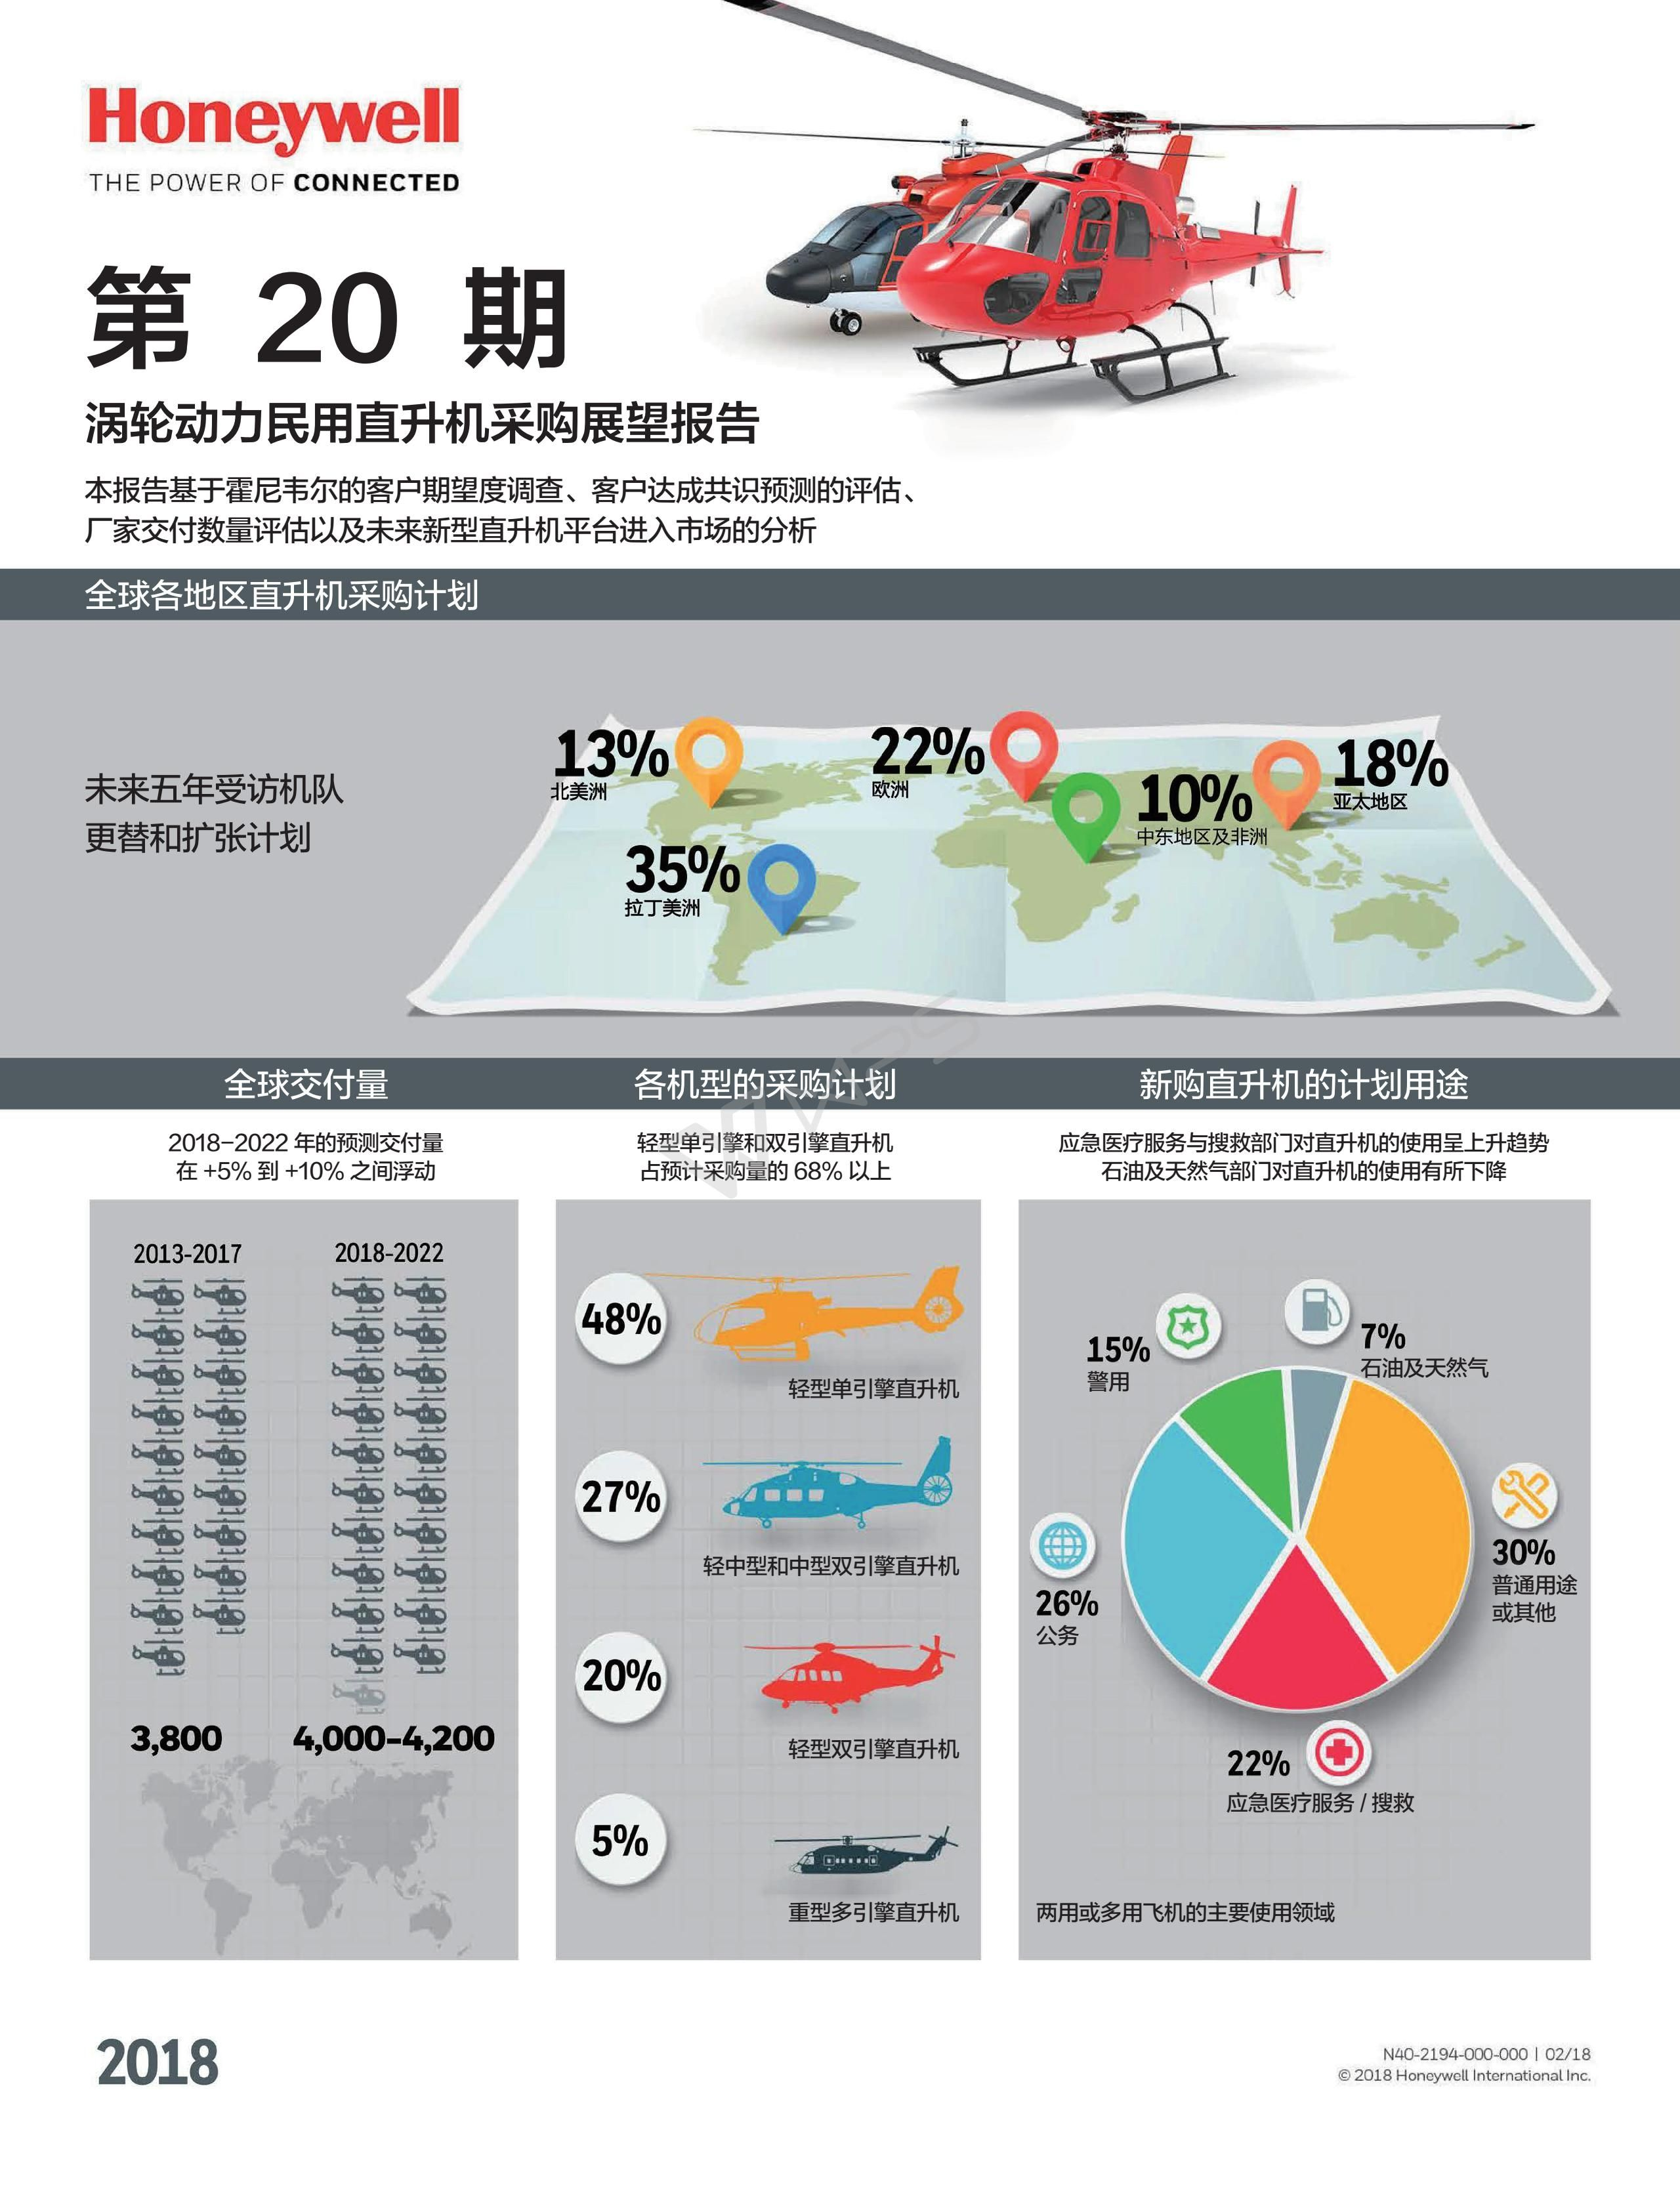 Honeywell Helicopters 4,000 to 4,200 New Civil Helicopter